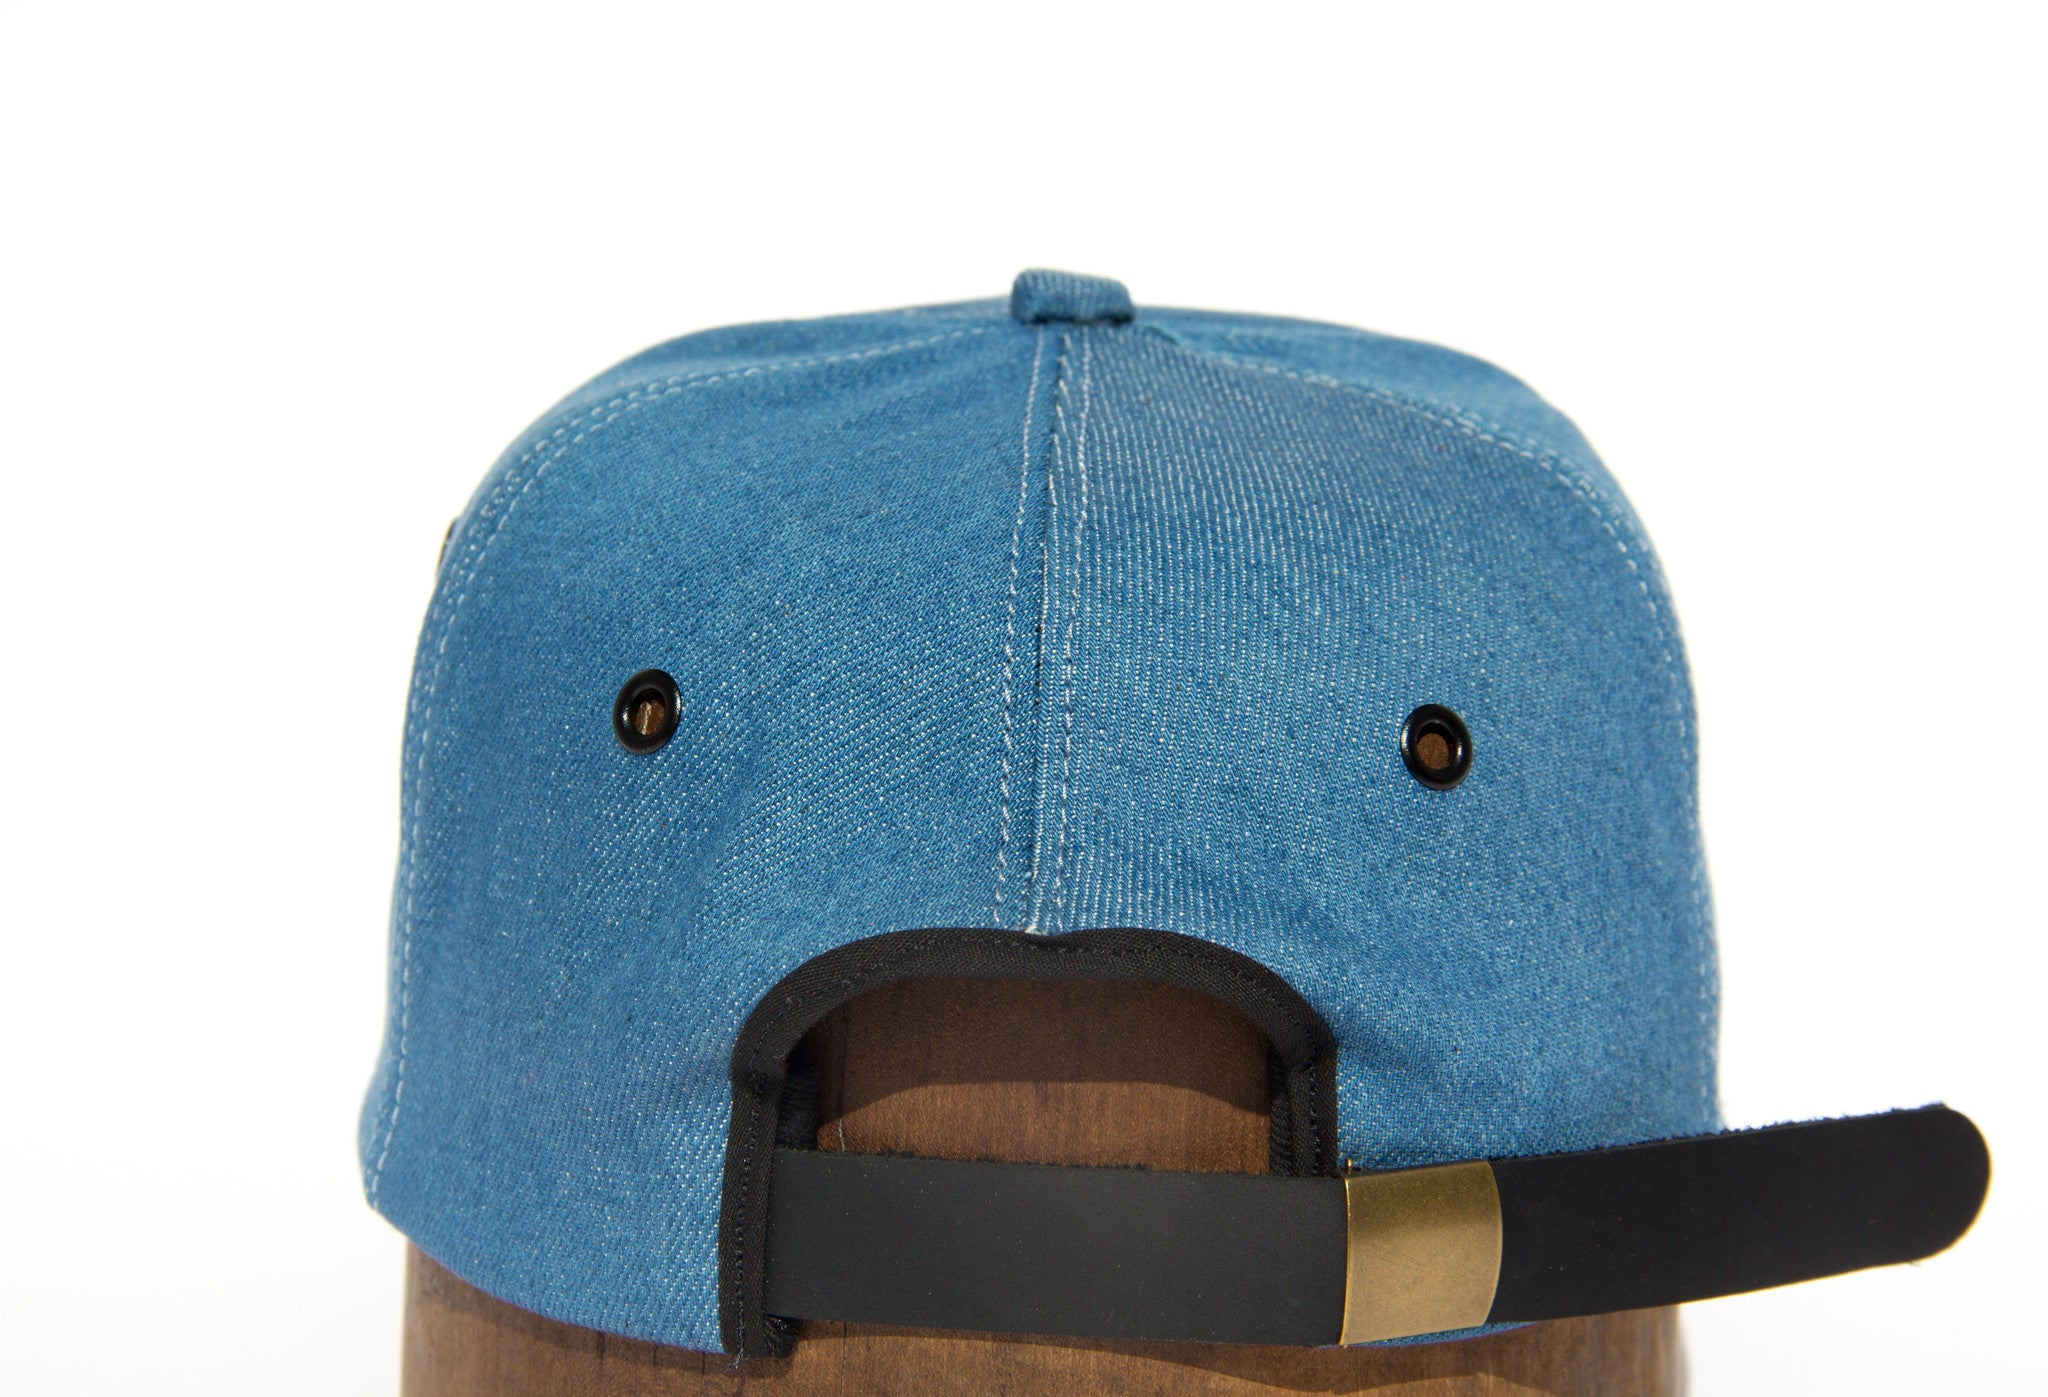 Trucker - Blue Denim - Wood Brim Hat